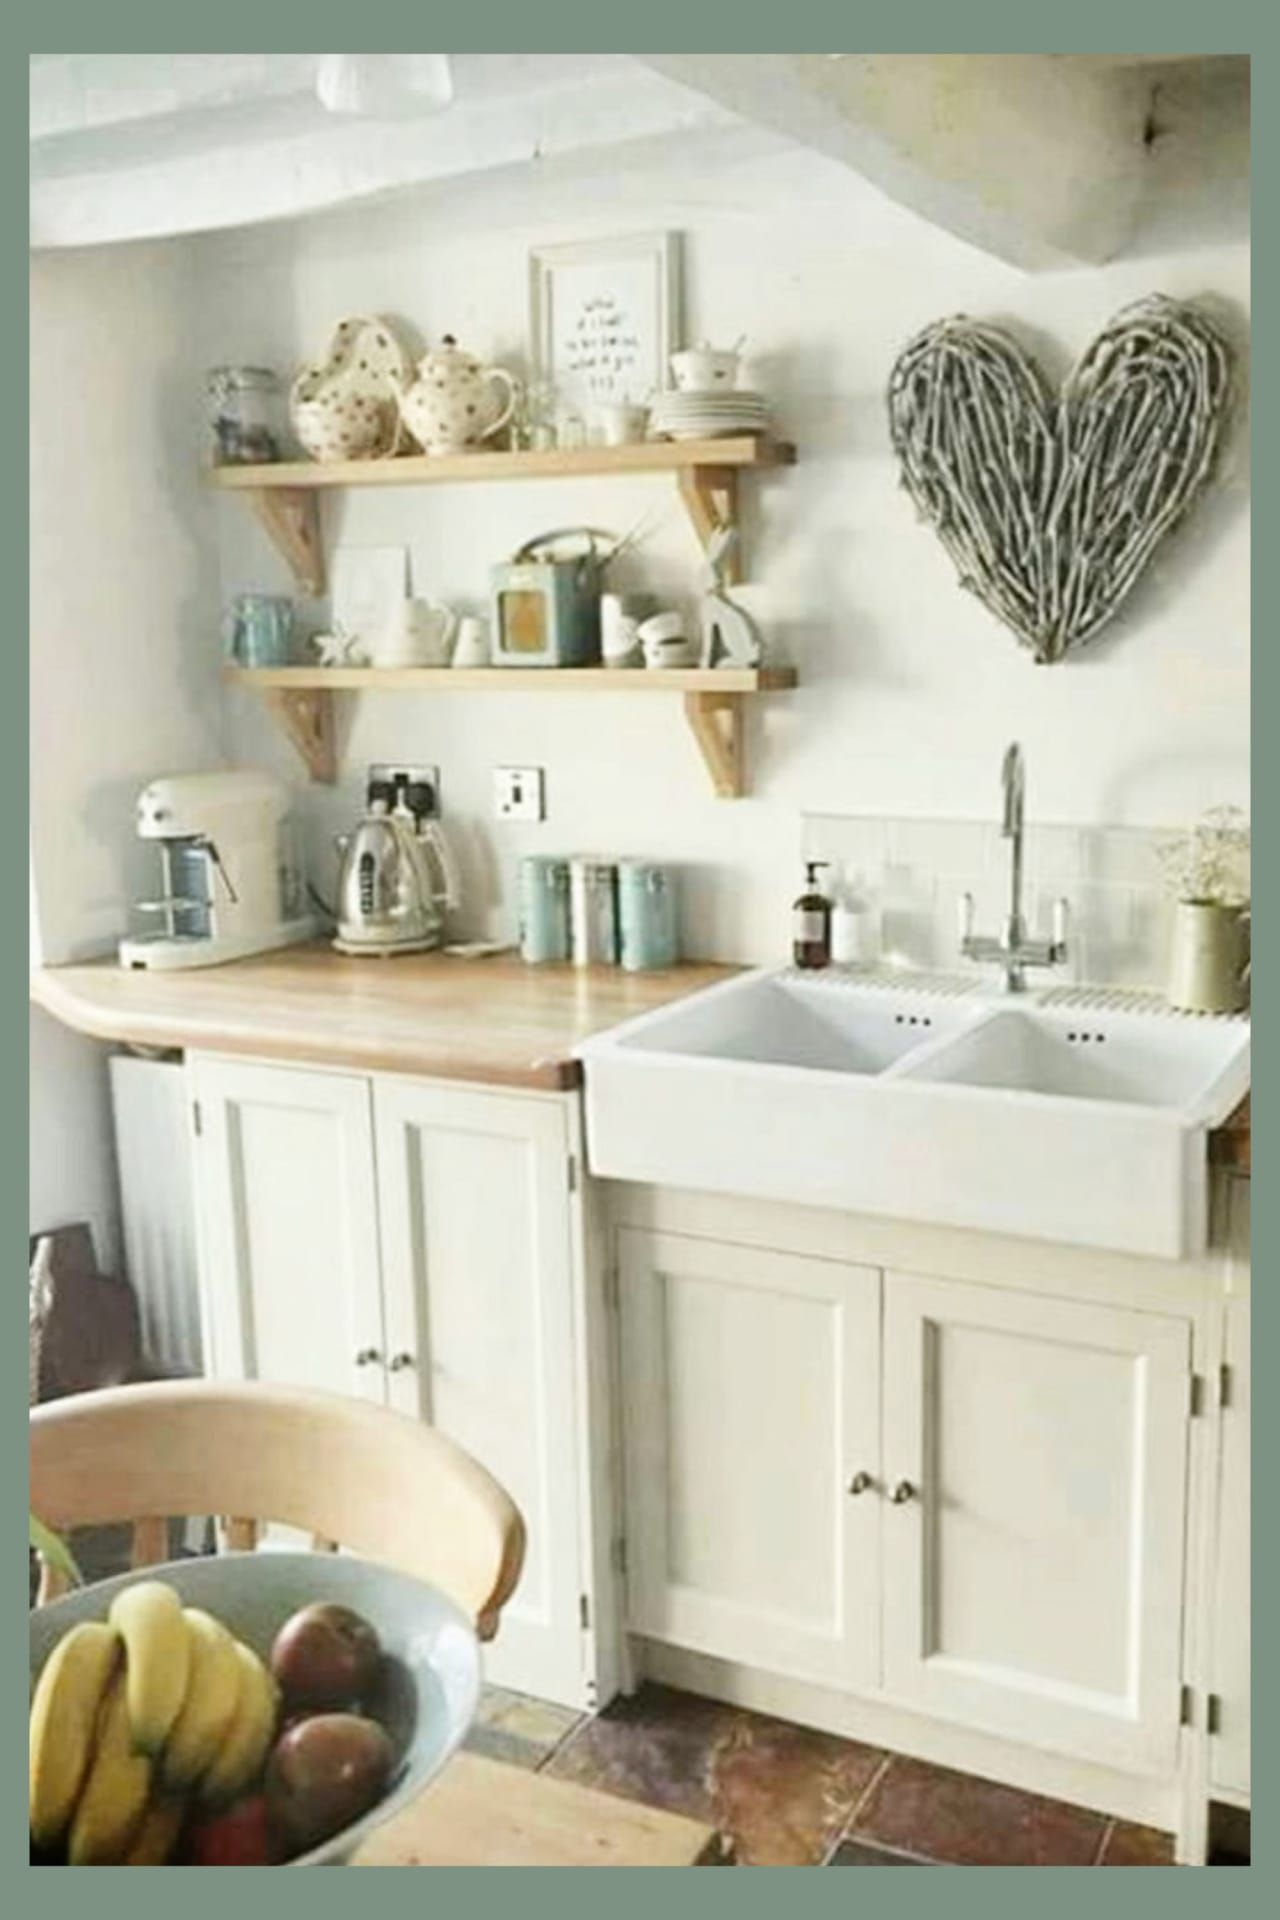 Farmhouse Kitchen Ideas Pictures Of Country Farmhouse Kitchens On A Budget New For 2020 Cottage Kitchen Decor Small Cottage Kitchen Cottage Kitchen Design,Hair Vital Proteins Collagen Peptides Before And After